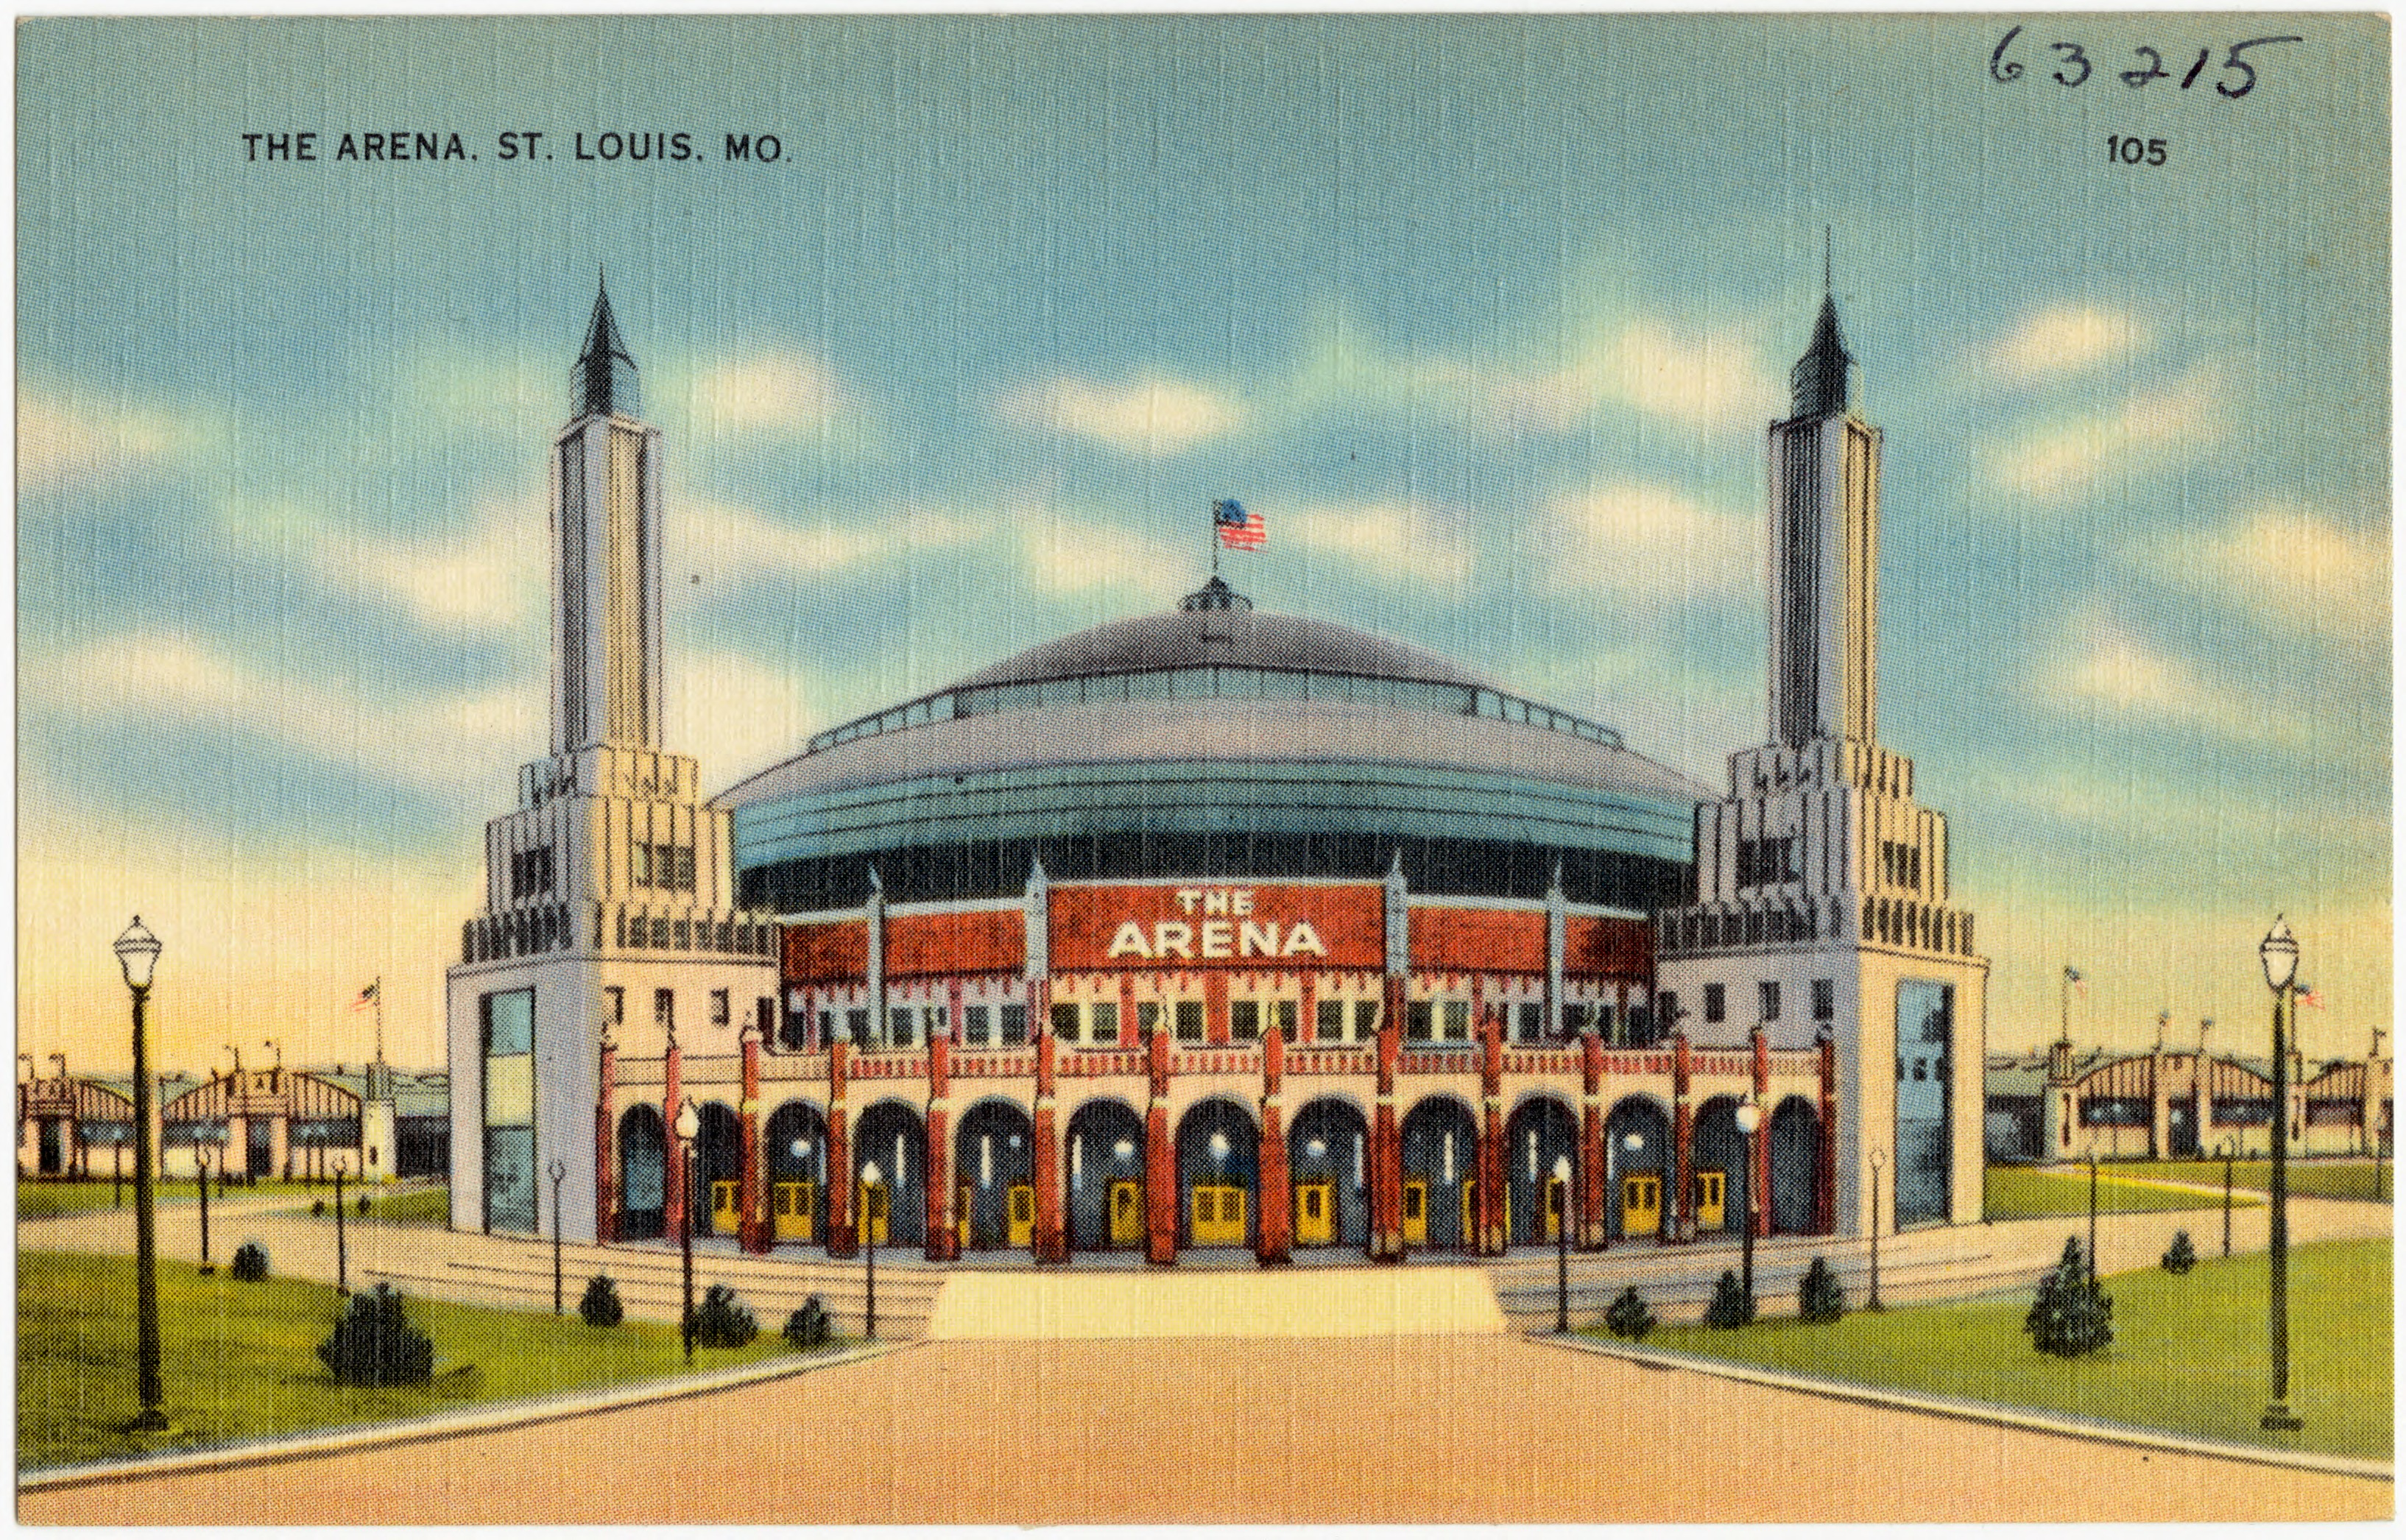 The_Arena._St._Louis._Mo_%2863215%29.jpg